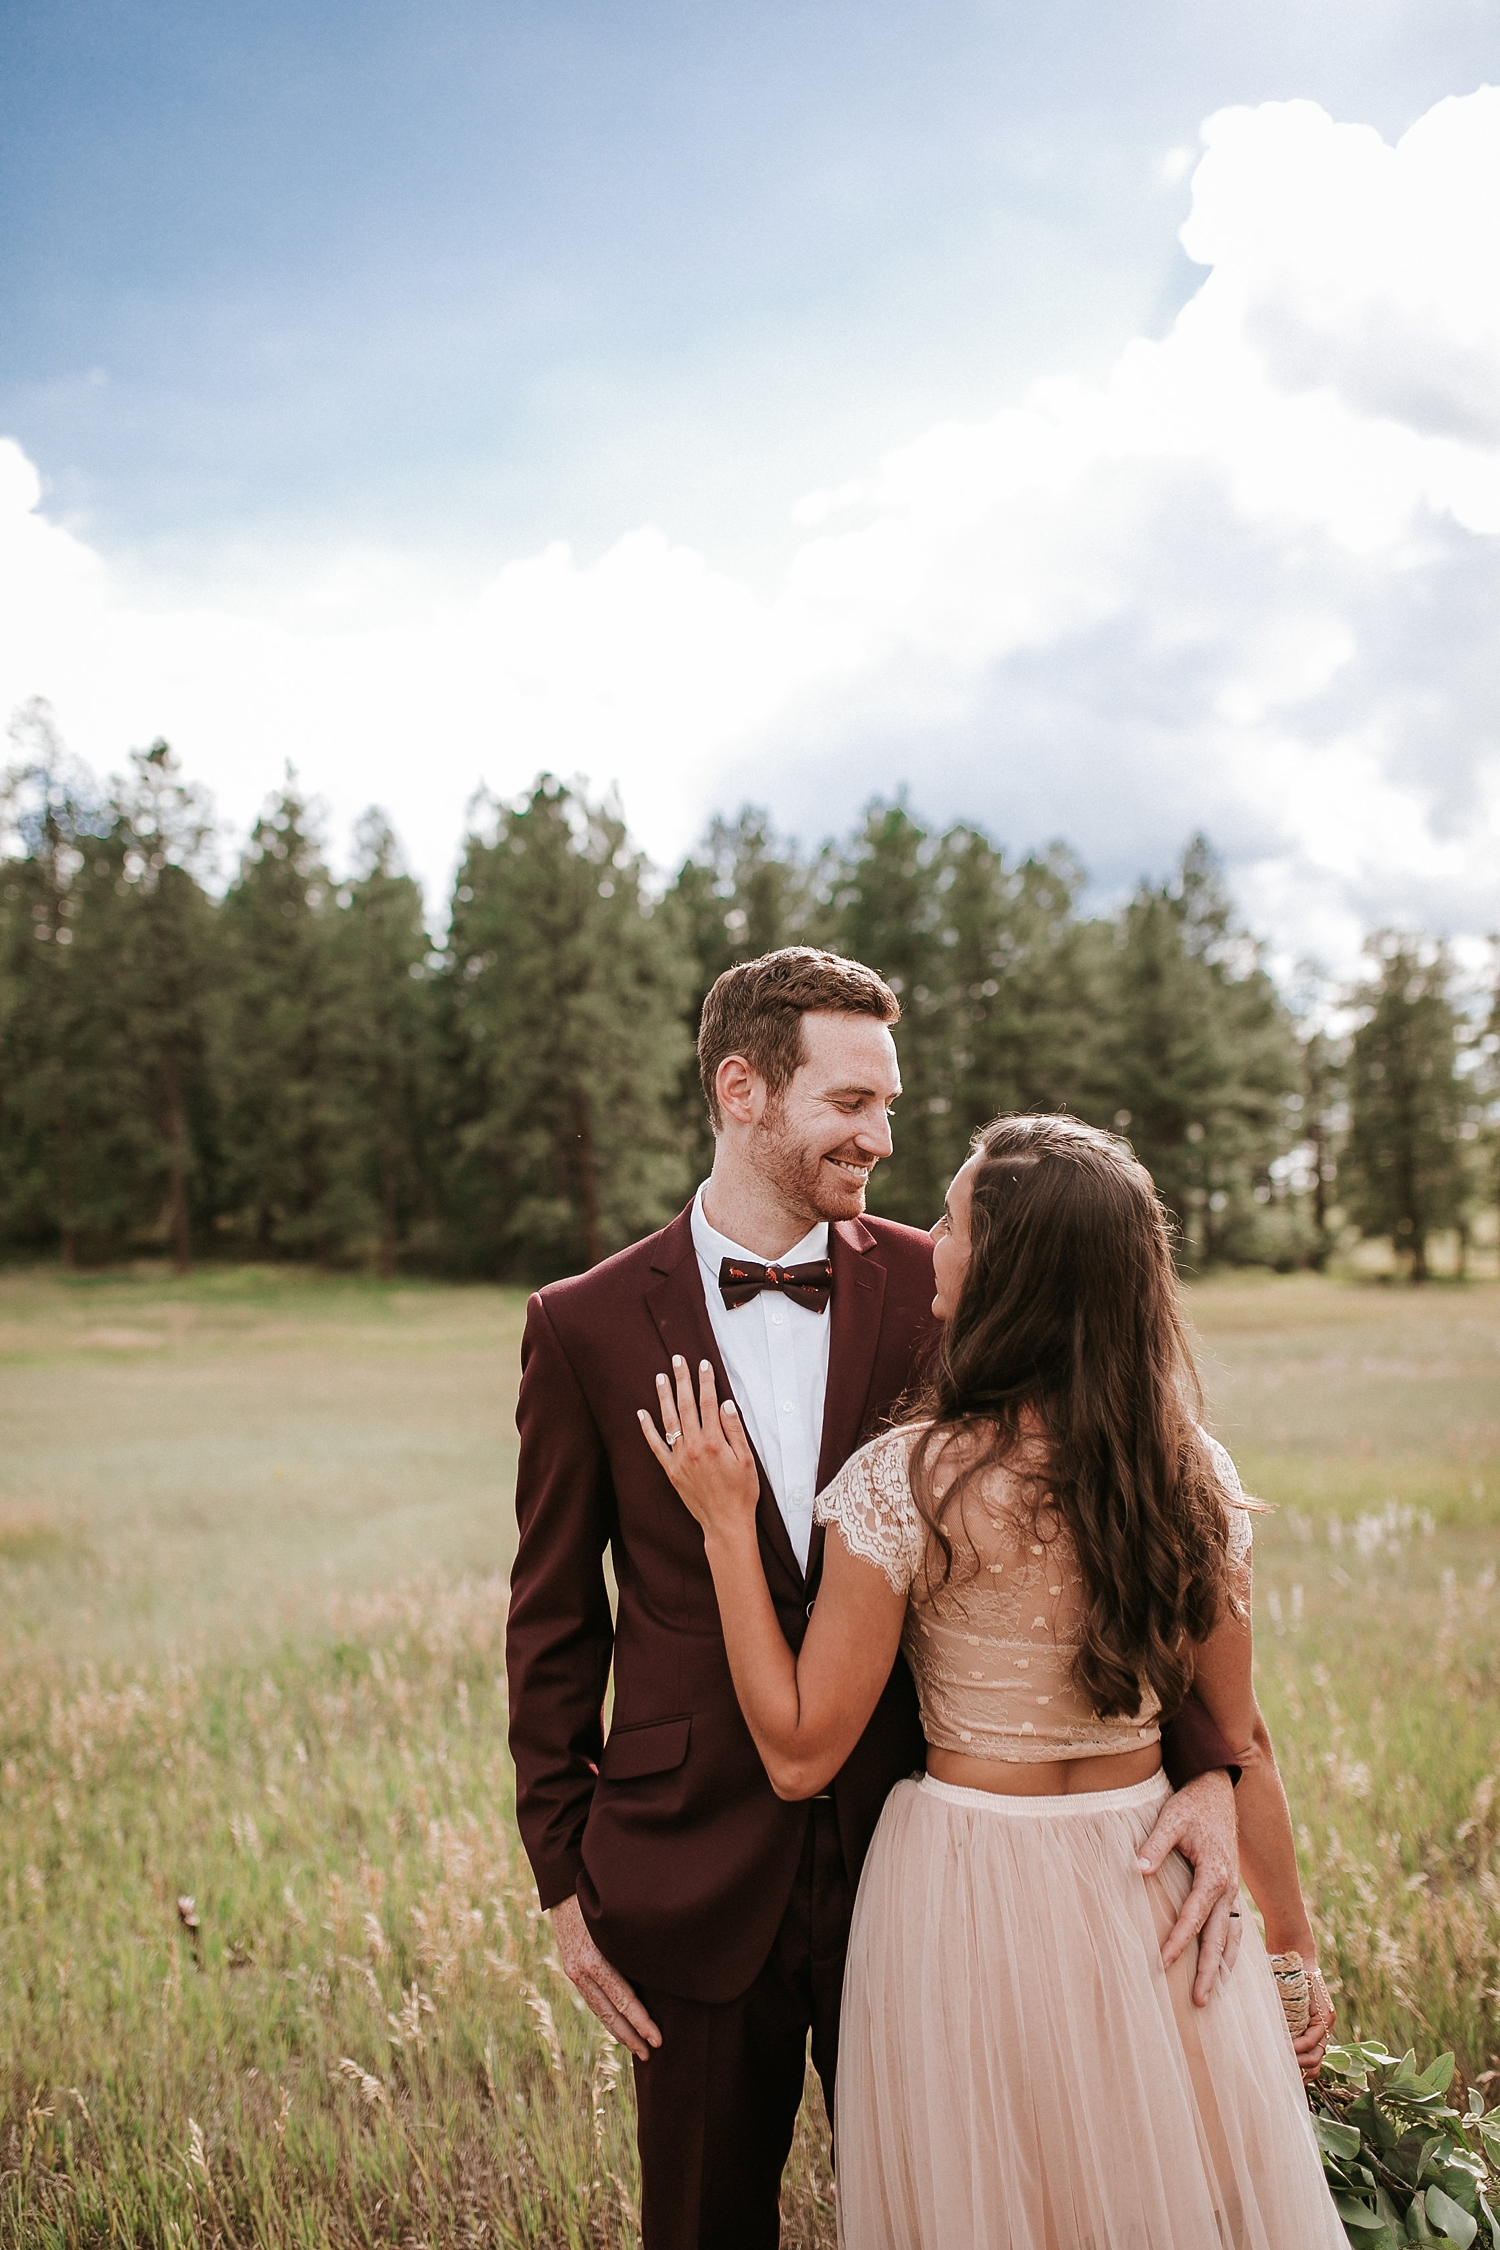 Alicia+lucia+photography+-+albuquerque+wedding+photographer+-+santa+fe+wedding+photography+-+new+mexico+wedding+photographer+-+pagosa+springs+wedding+-+destination+wedding_0042.jpg